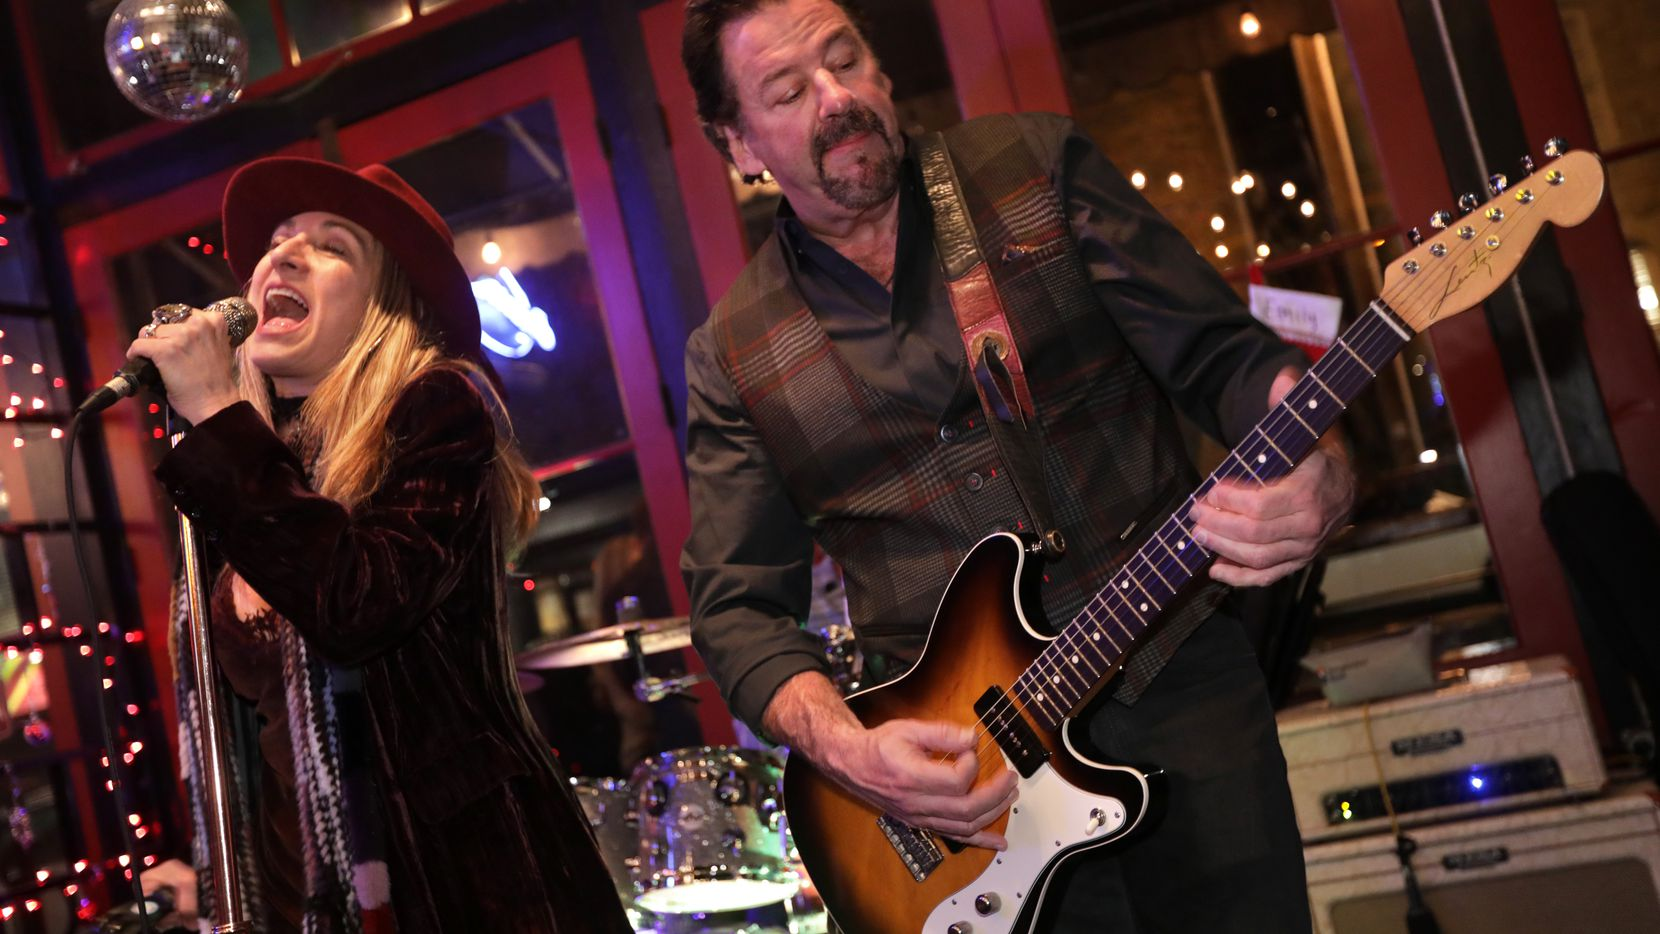 Maylee Thomas, left, and McKinney mayor George Fuller perform with The Maylee Thomas Band performs at Cadillac Pizza Pub in McKinney, TX, on Dec. 21, 2019. (Jason Janik/Special Contributor)